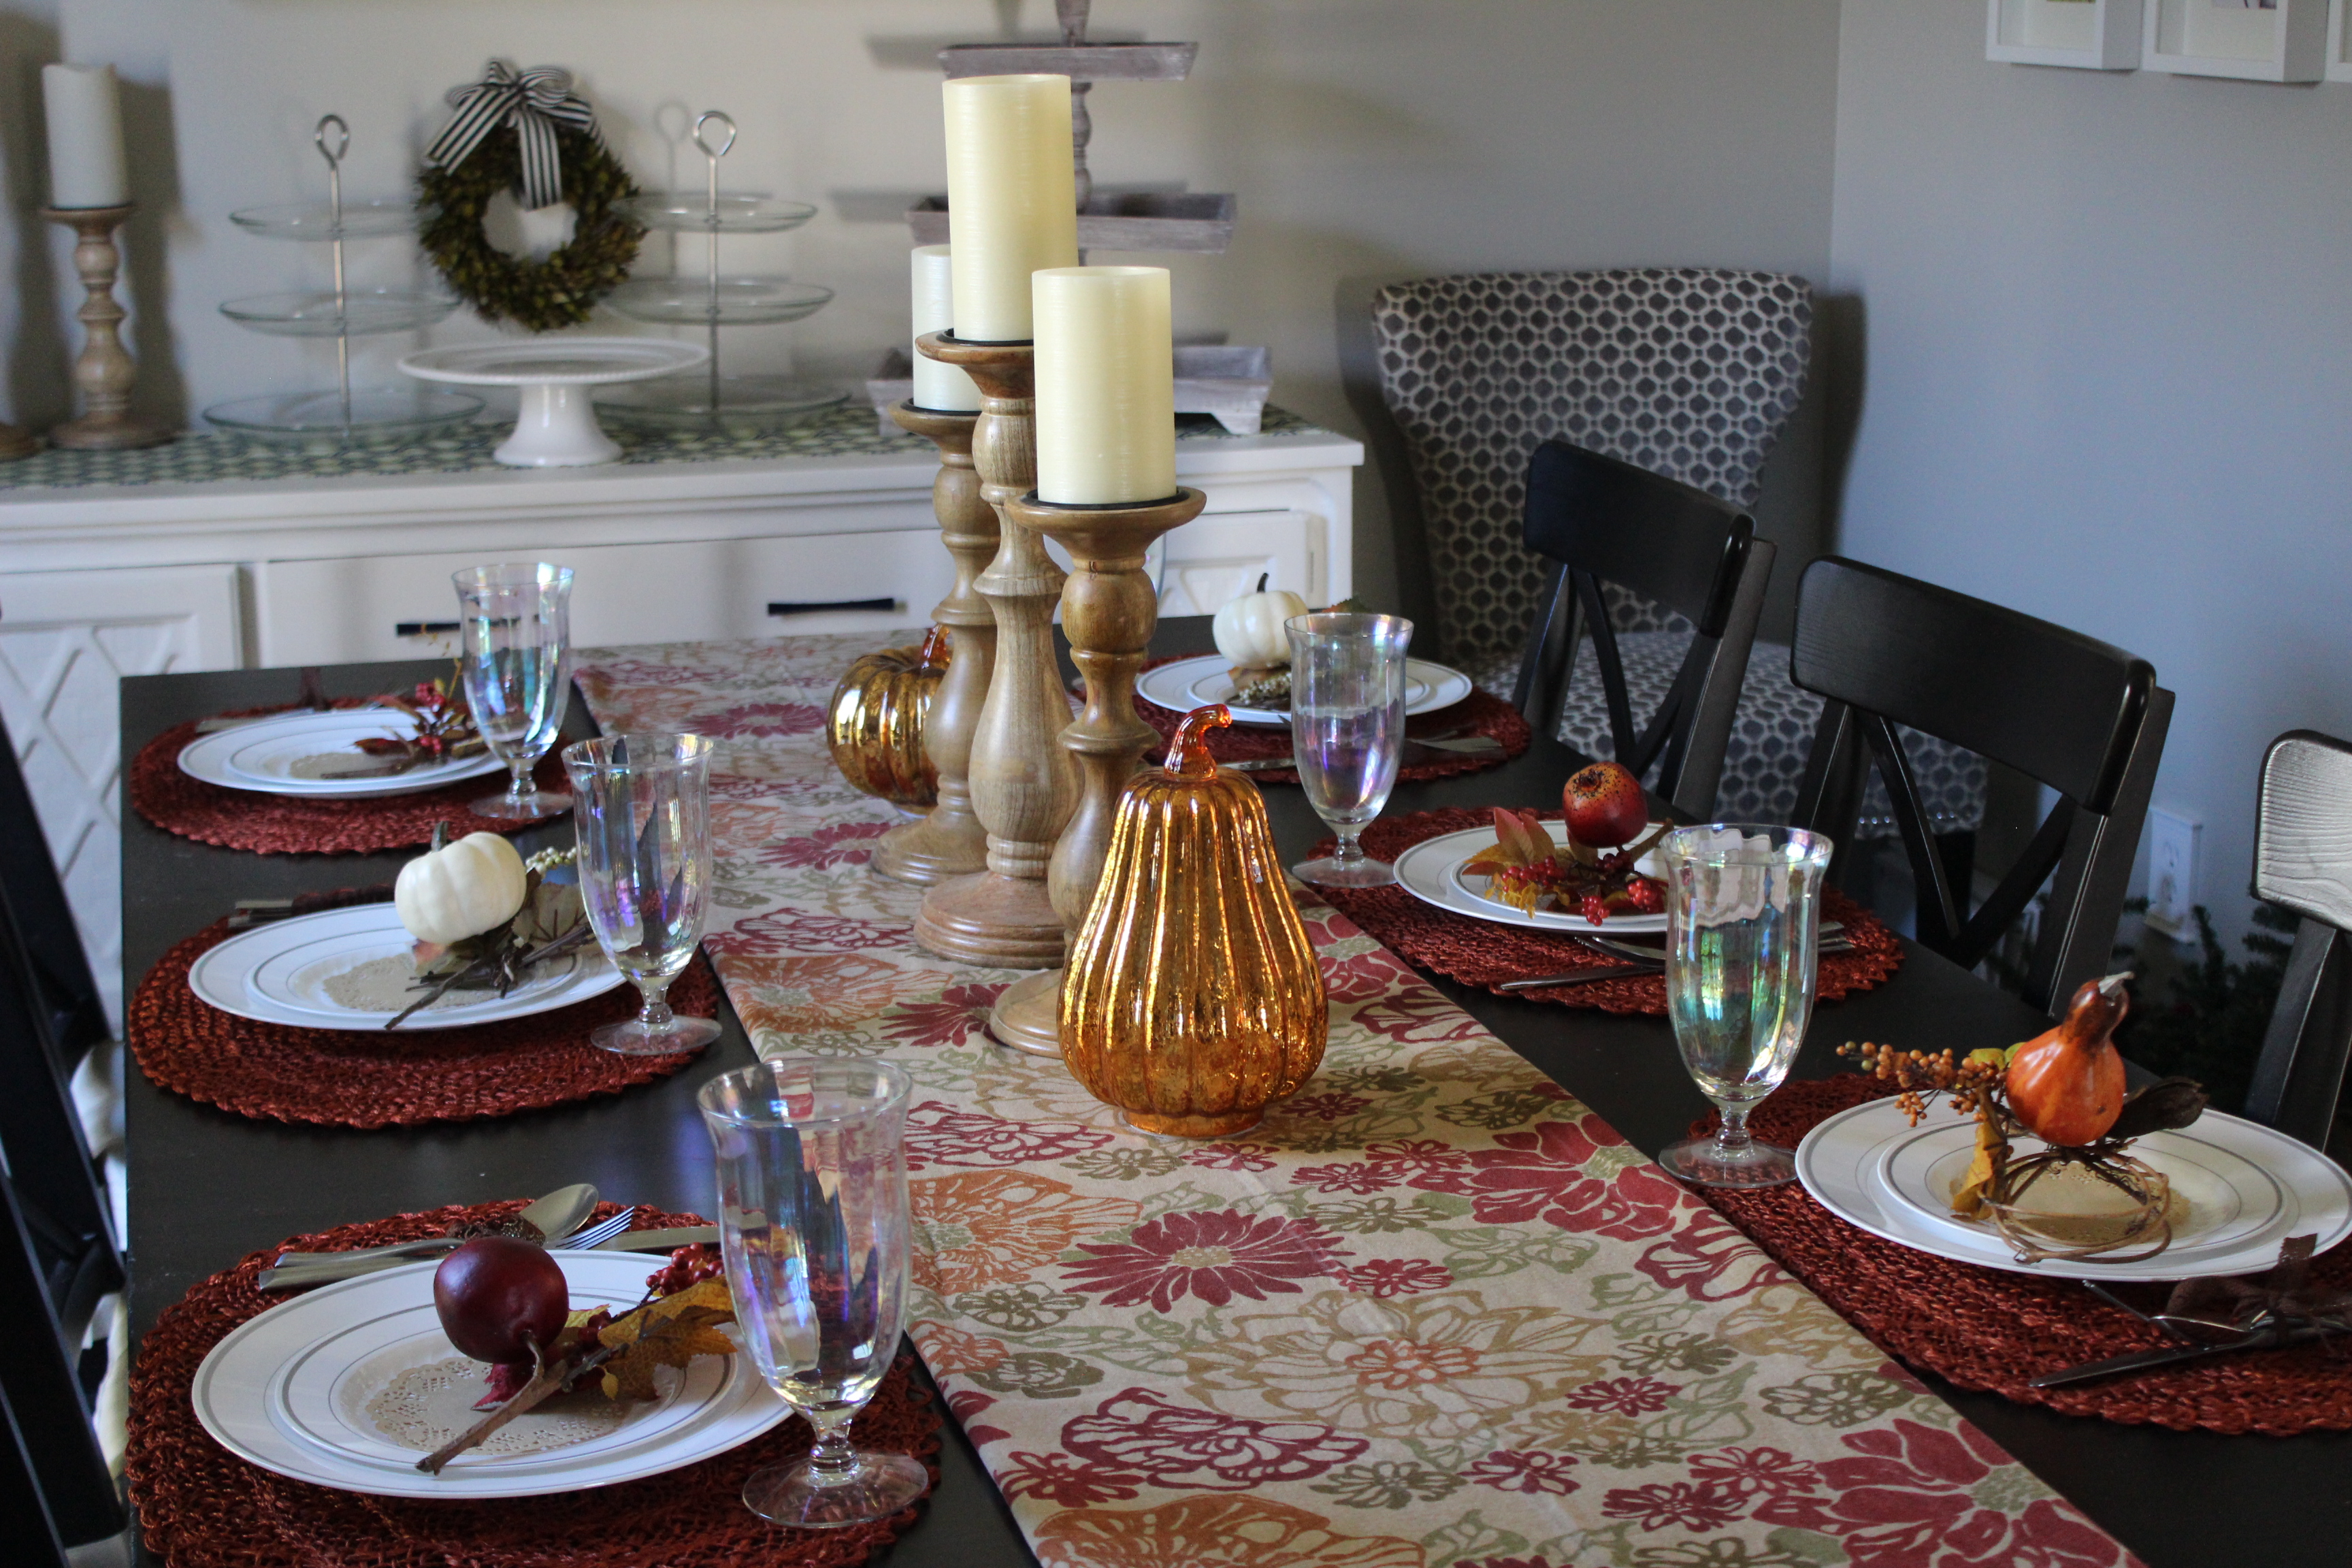 Fall colors are a given for your Thanksgiving table decor